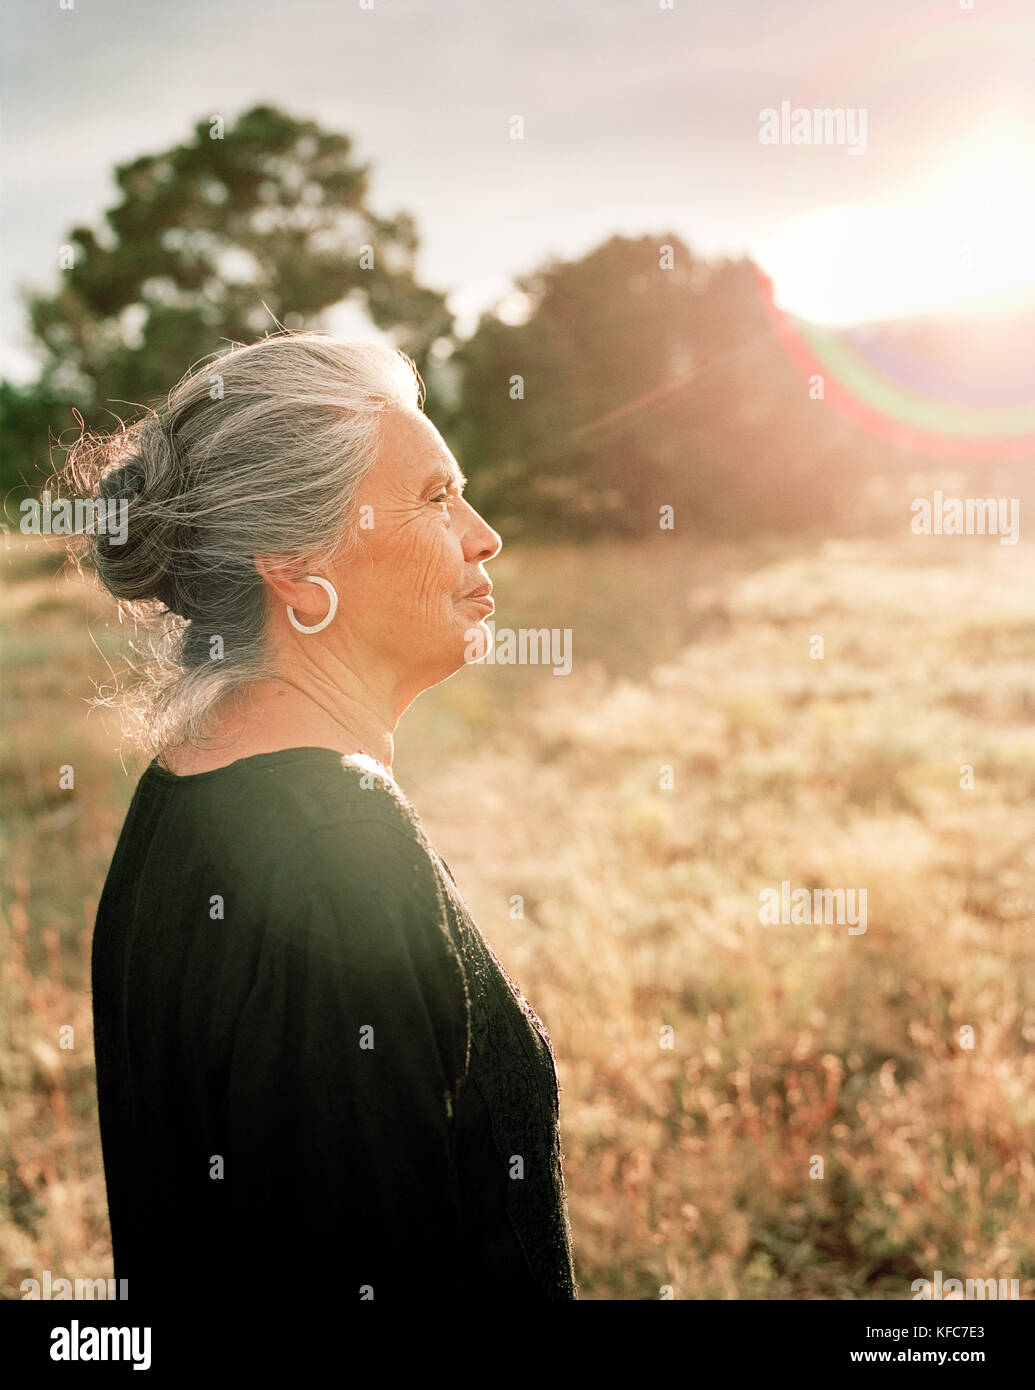 USA, New Mexico, beautiful Native American woman at sunset, Valley of the Wild Roses - Stock Image